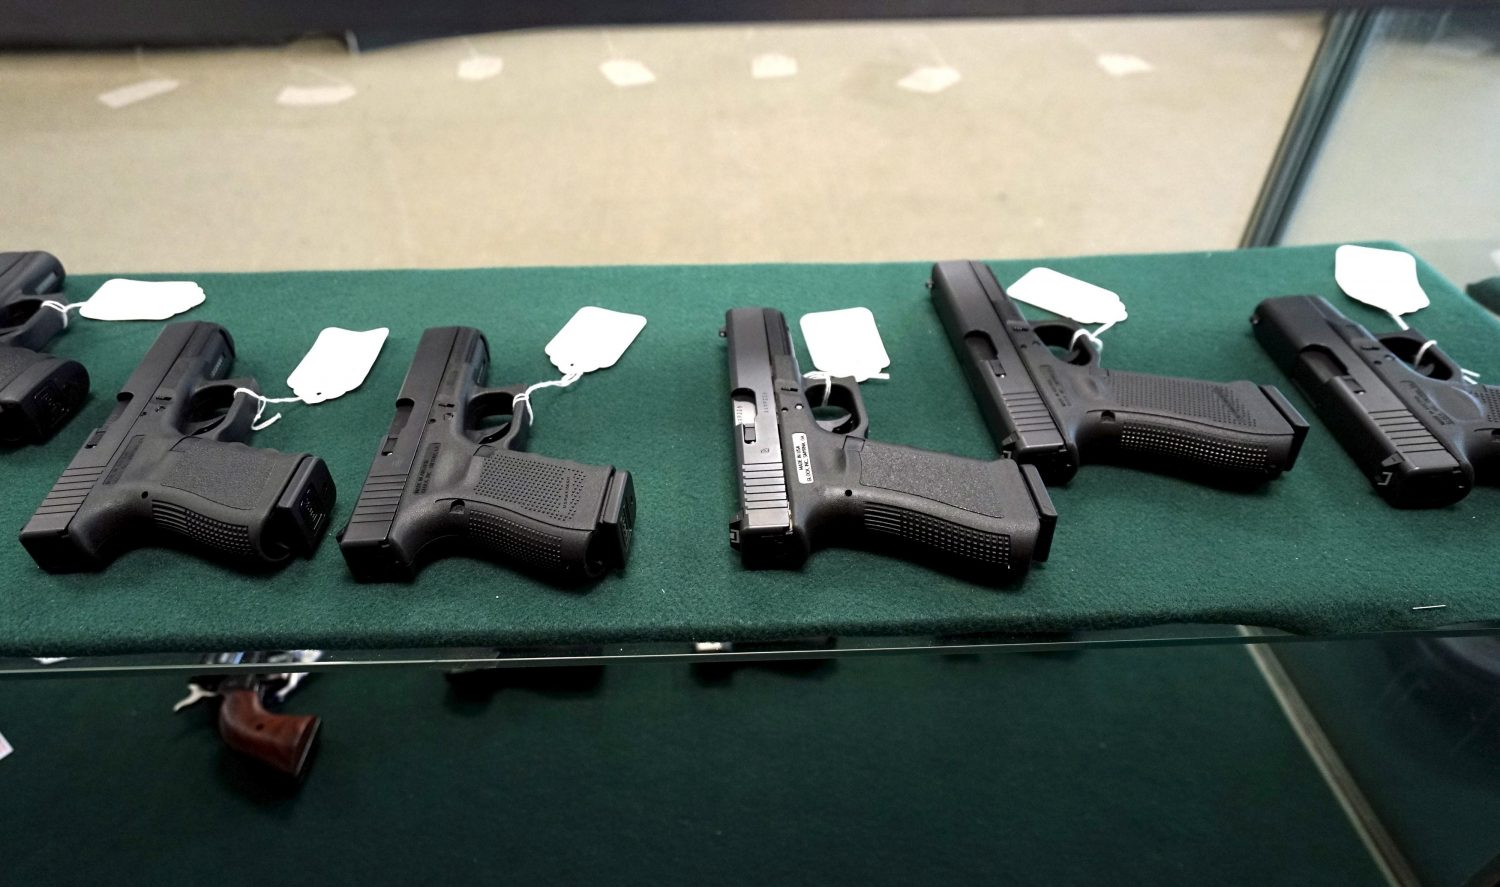 FILE PHOTO: A selection of Glock pistols are seen for sale at the Pony Express Firearms shop in Parker, Colorado December 7, 2015. REUTERS/Rick Wilking